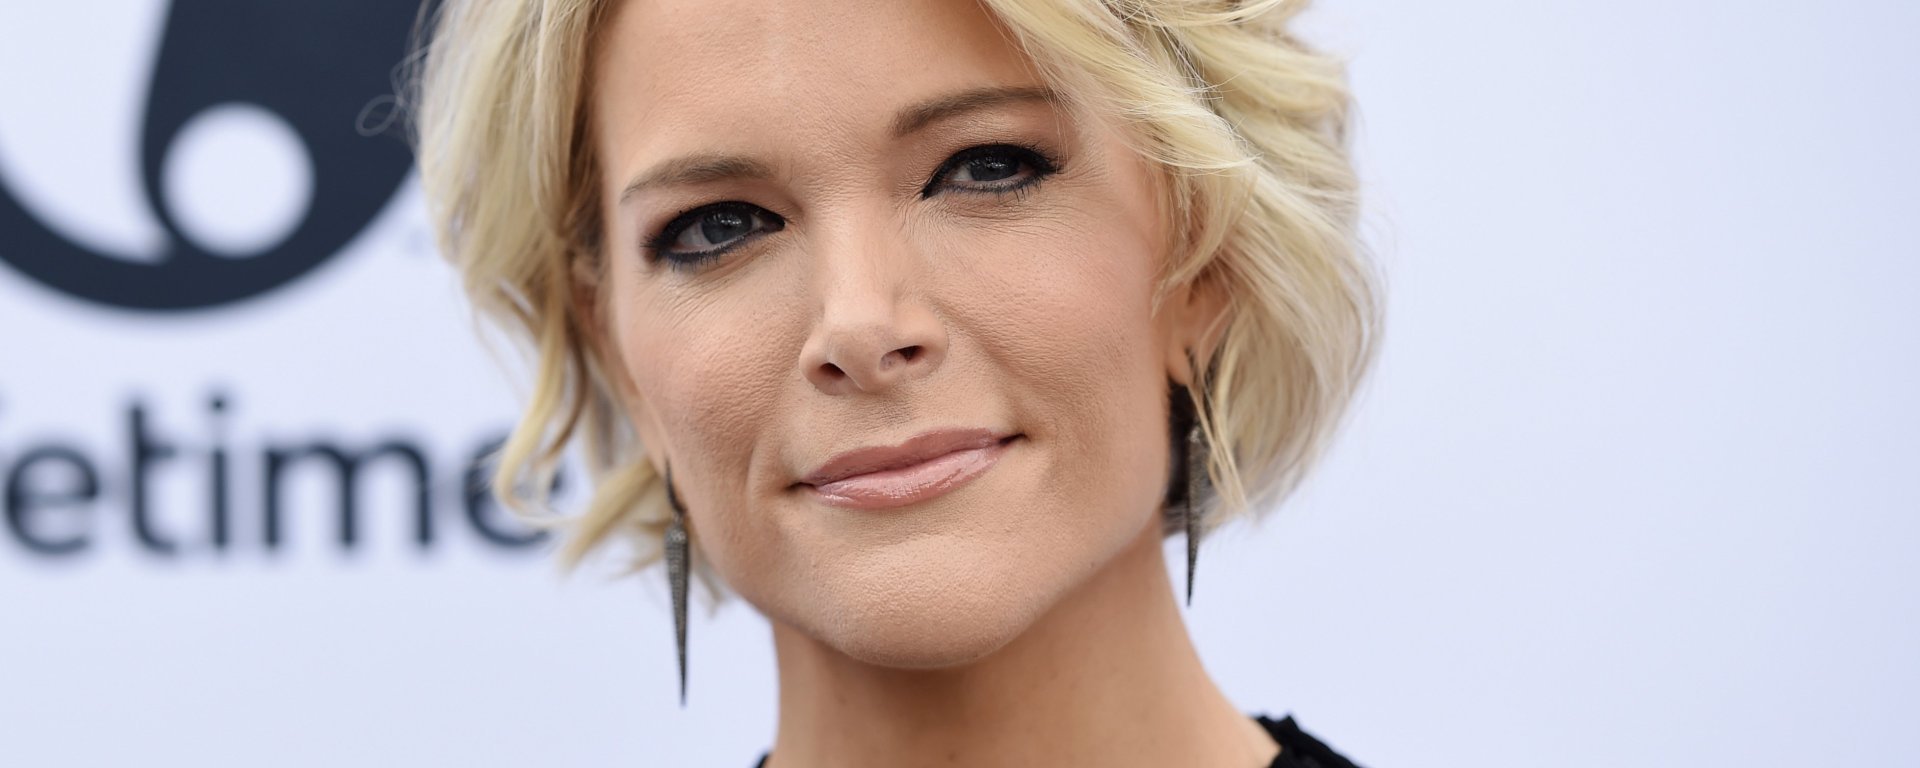 J P  Morgan Removes NBC News Ads Over Megyn Kelly Interview